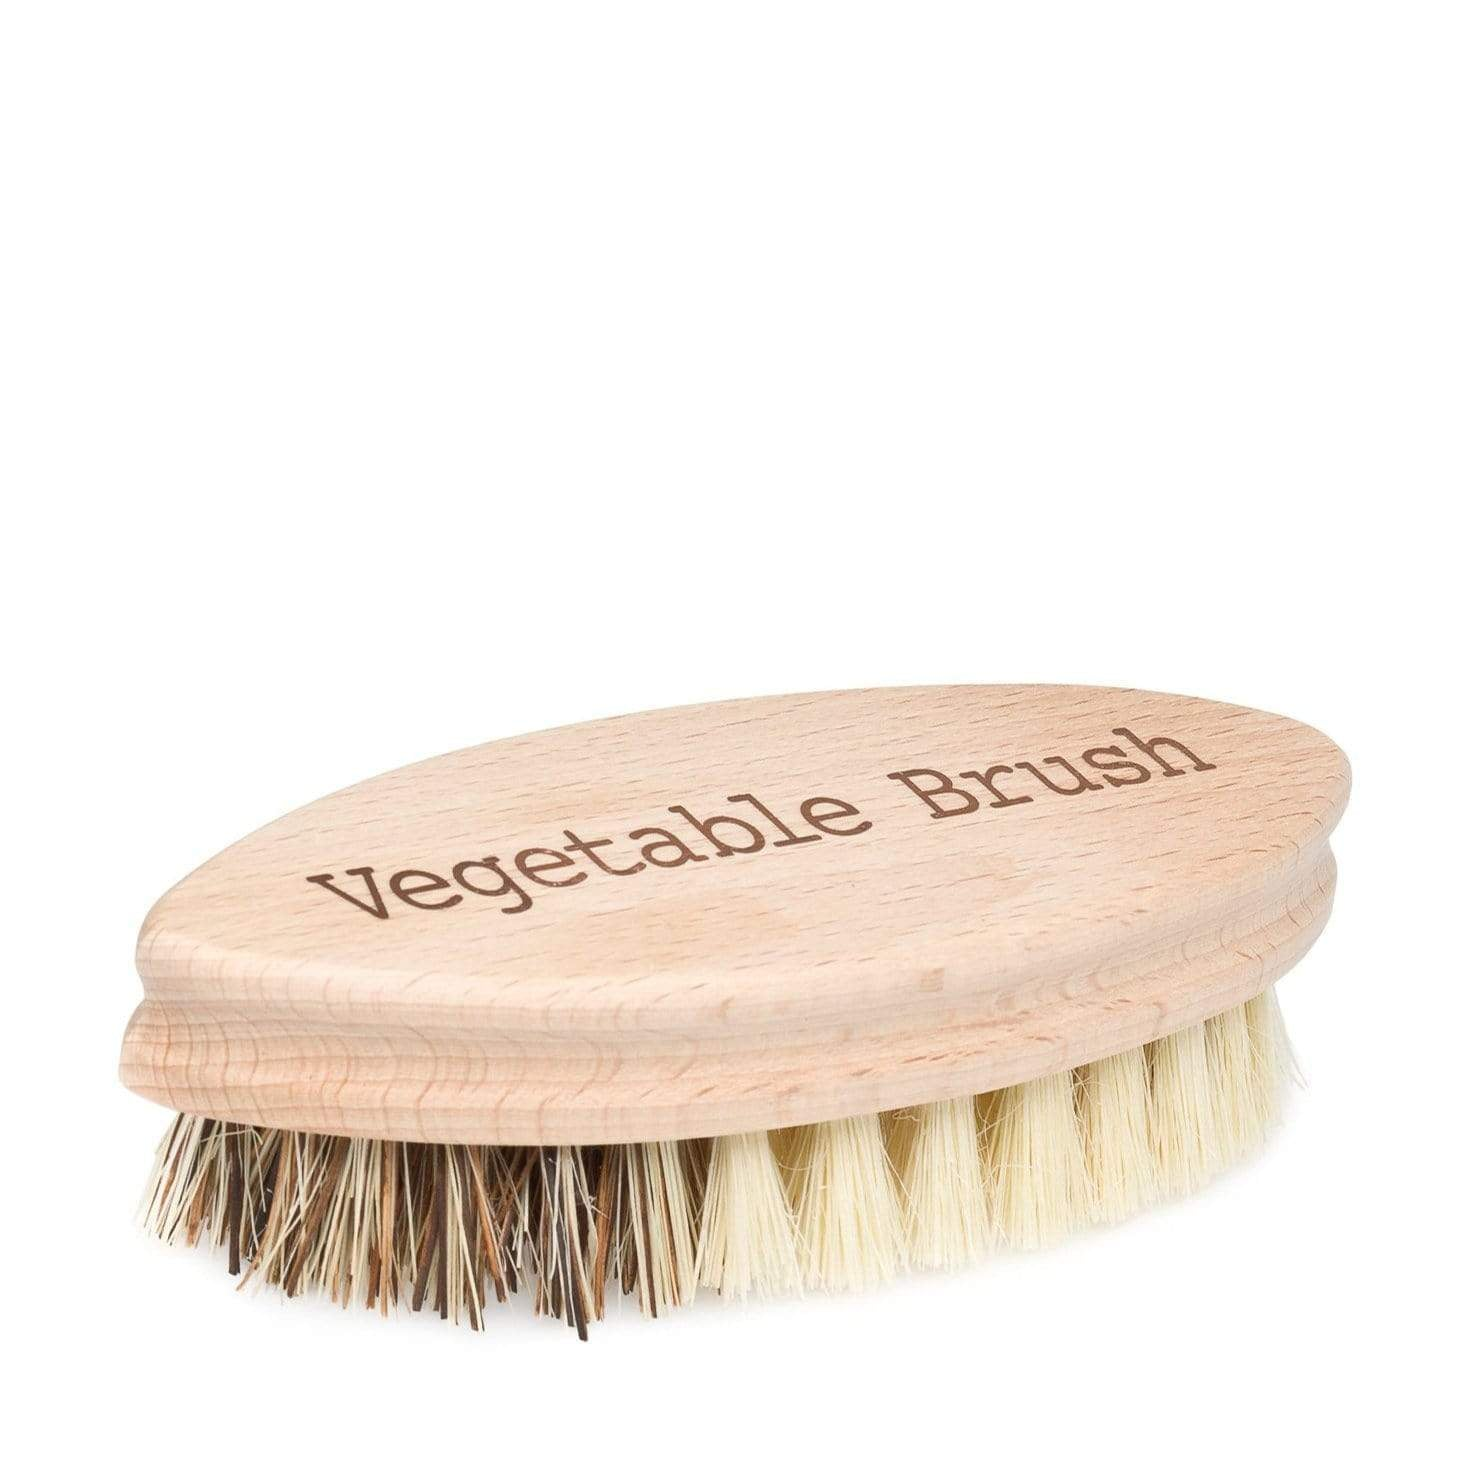 Vegetable Brush - Oval